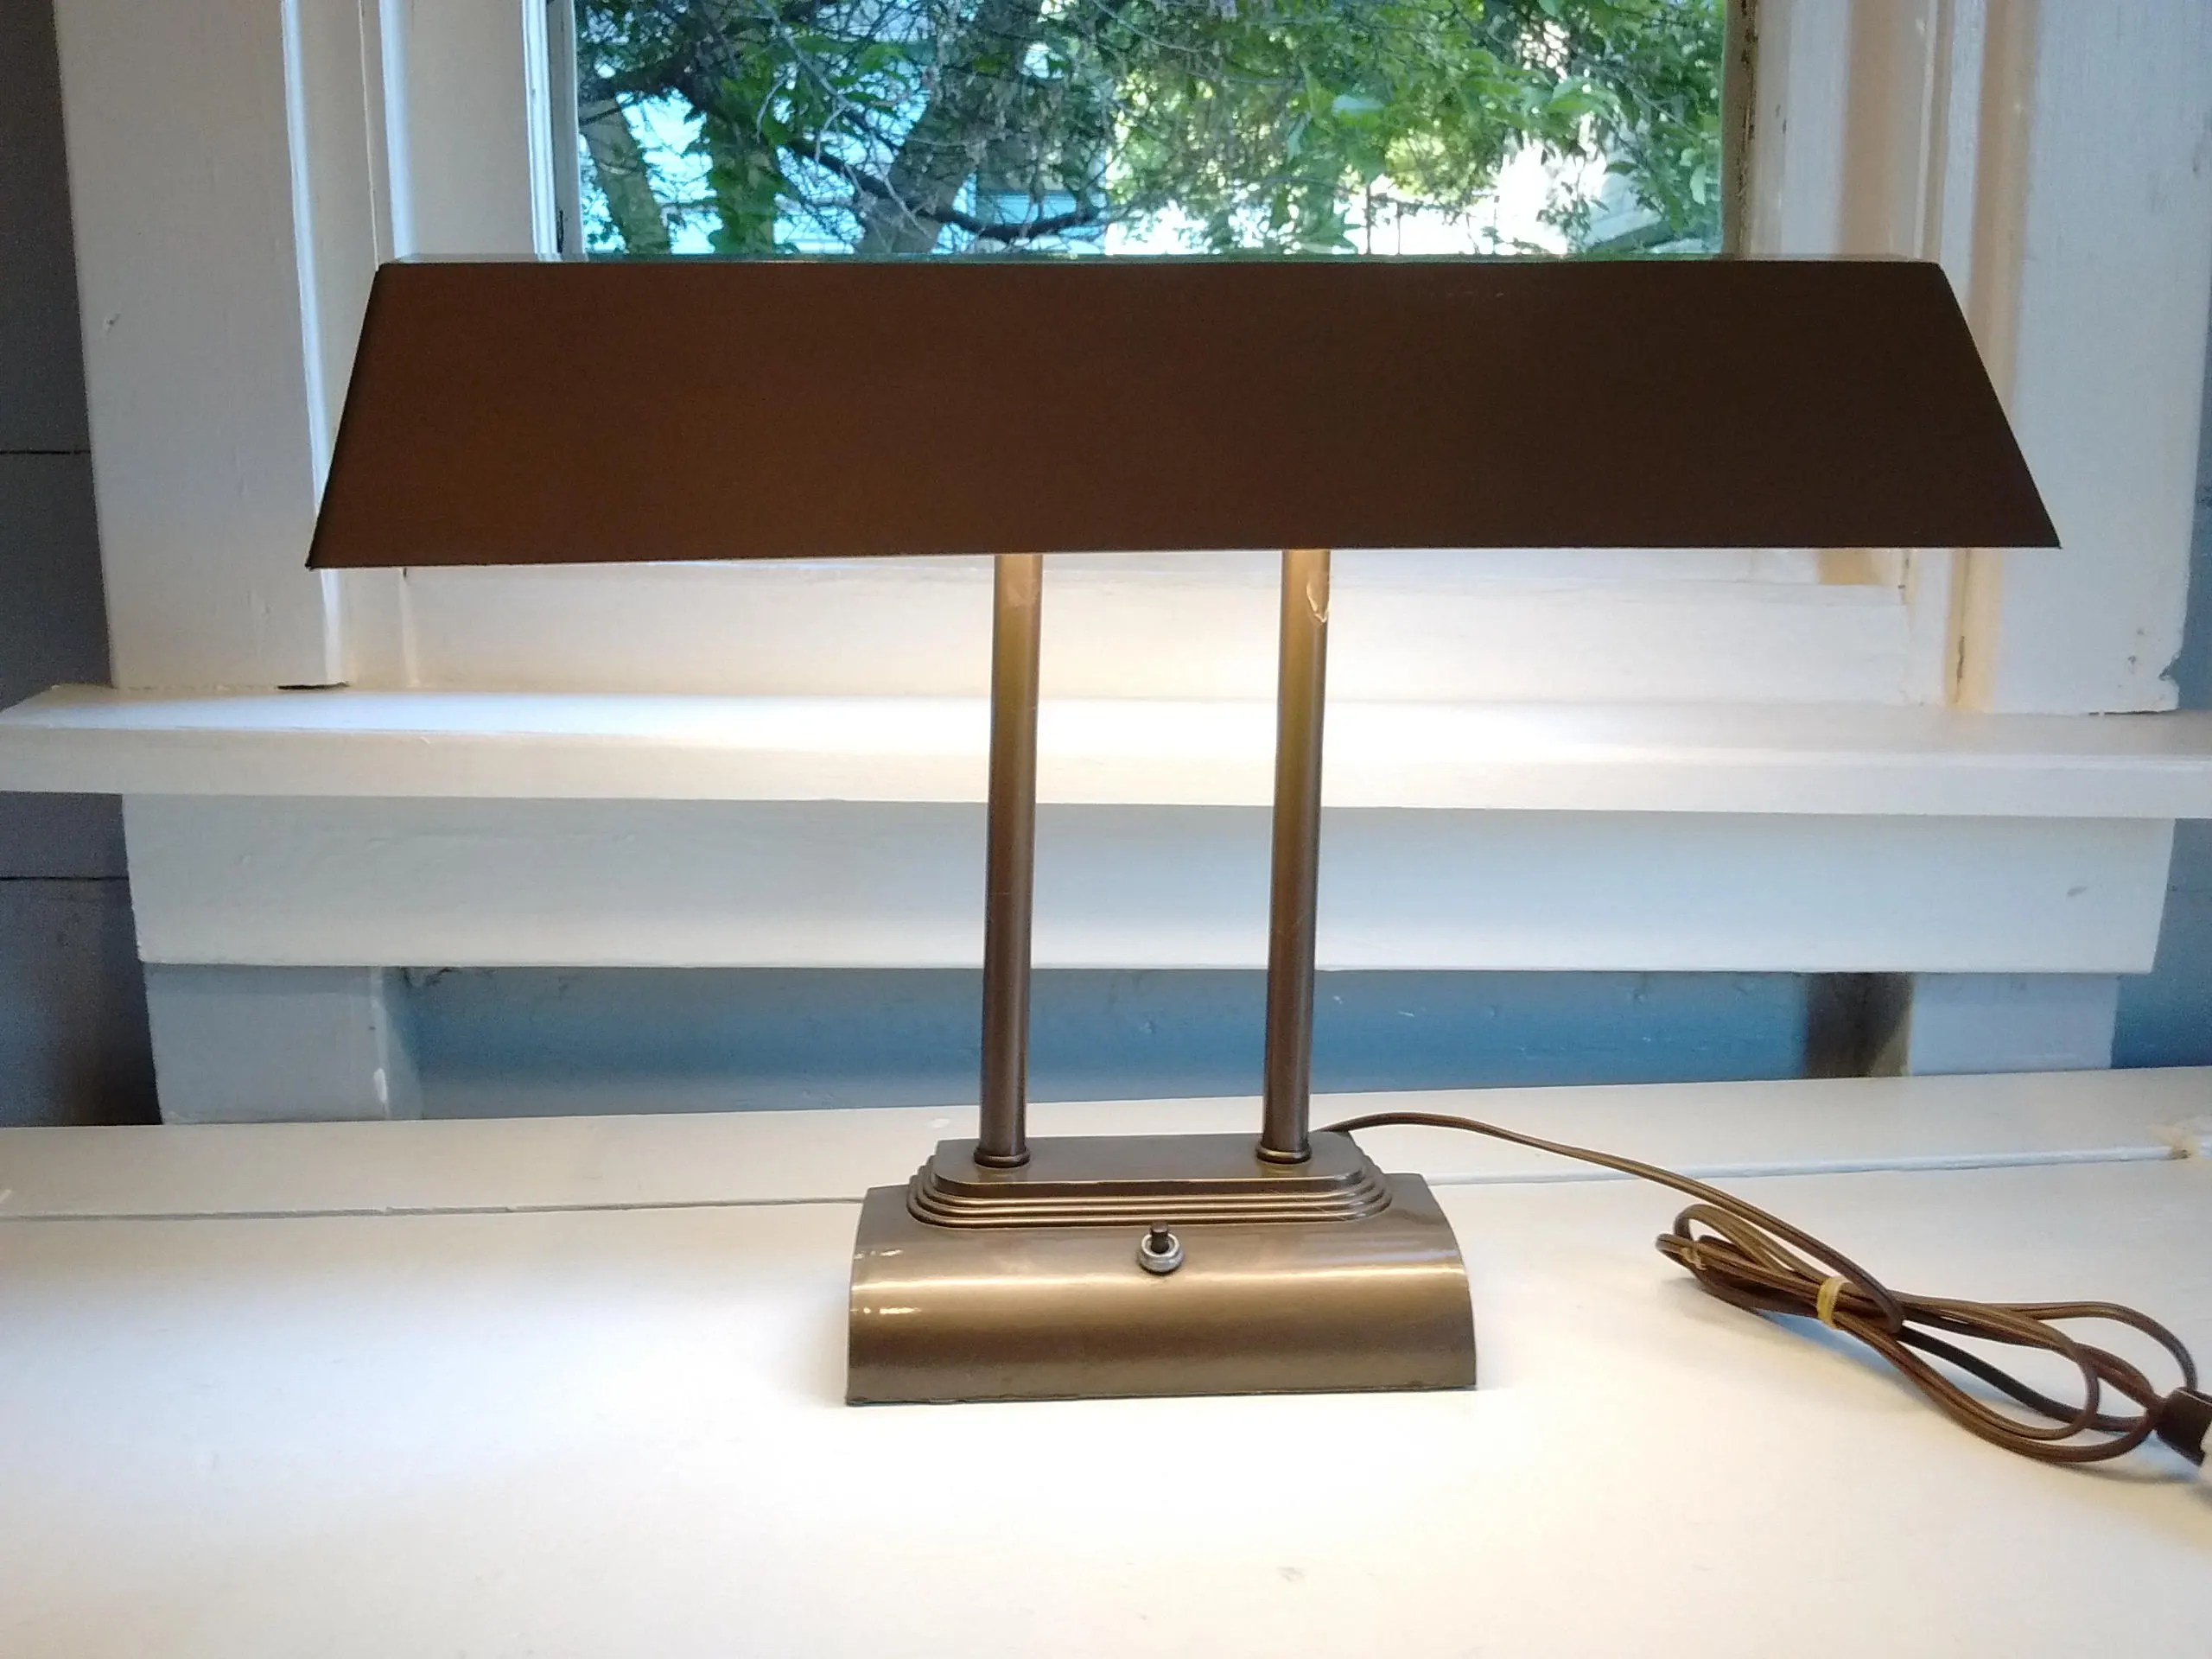 Vintage Industrial Drafting Table Lamp Desk Lamp Art Deco